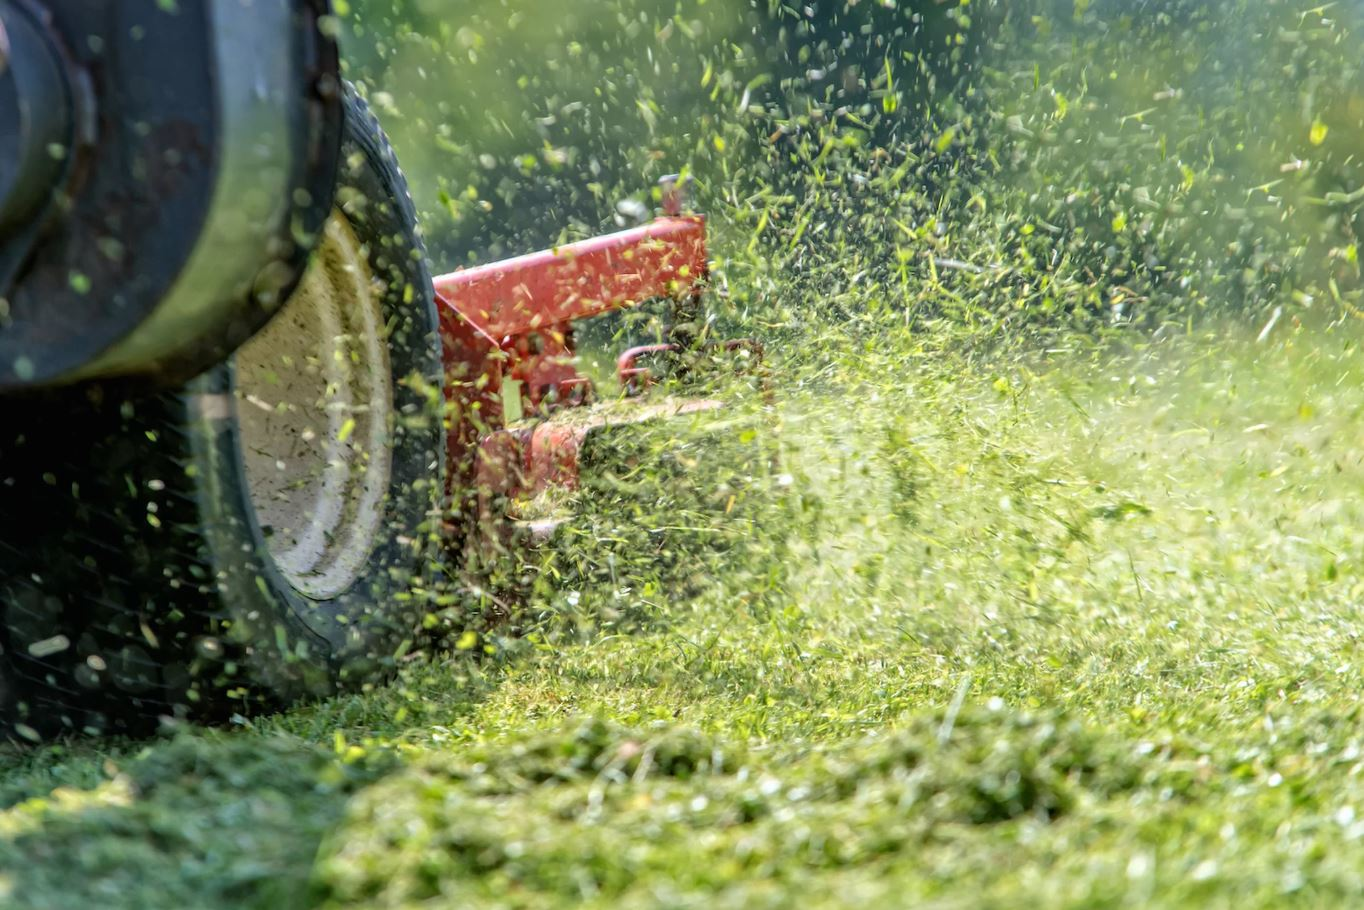 Why Does Freshly Cut Grass Smell So Nice? |  Live Science